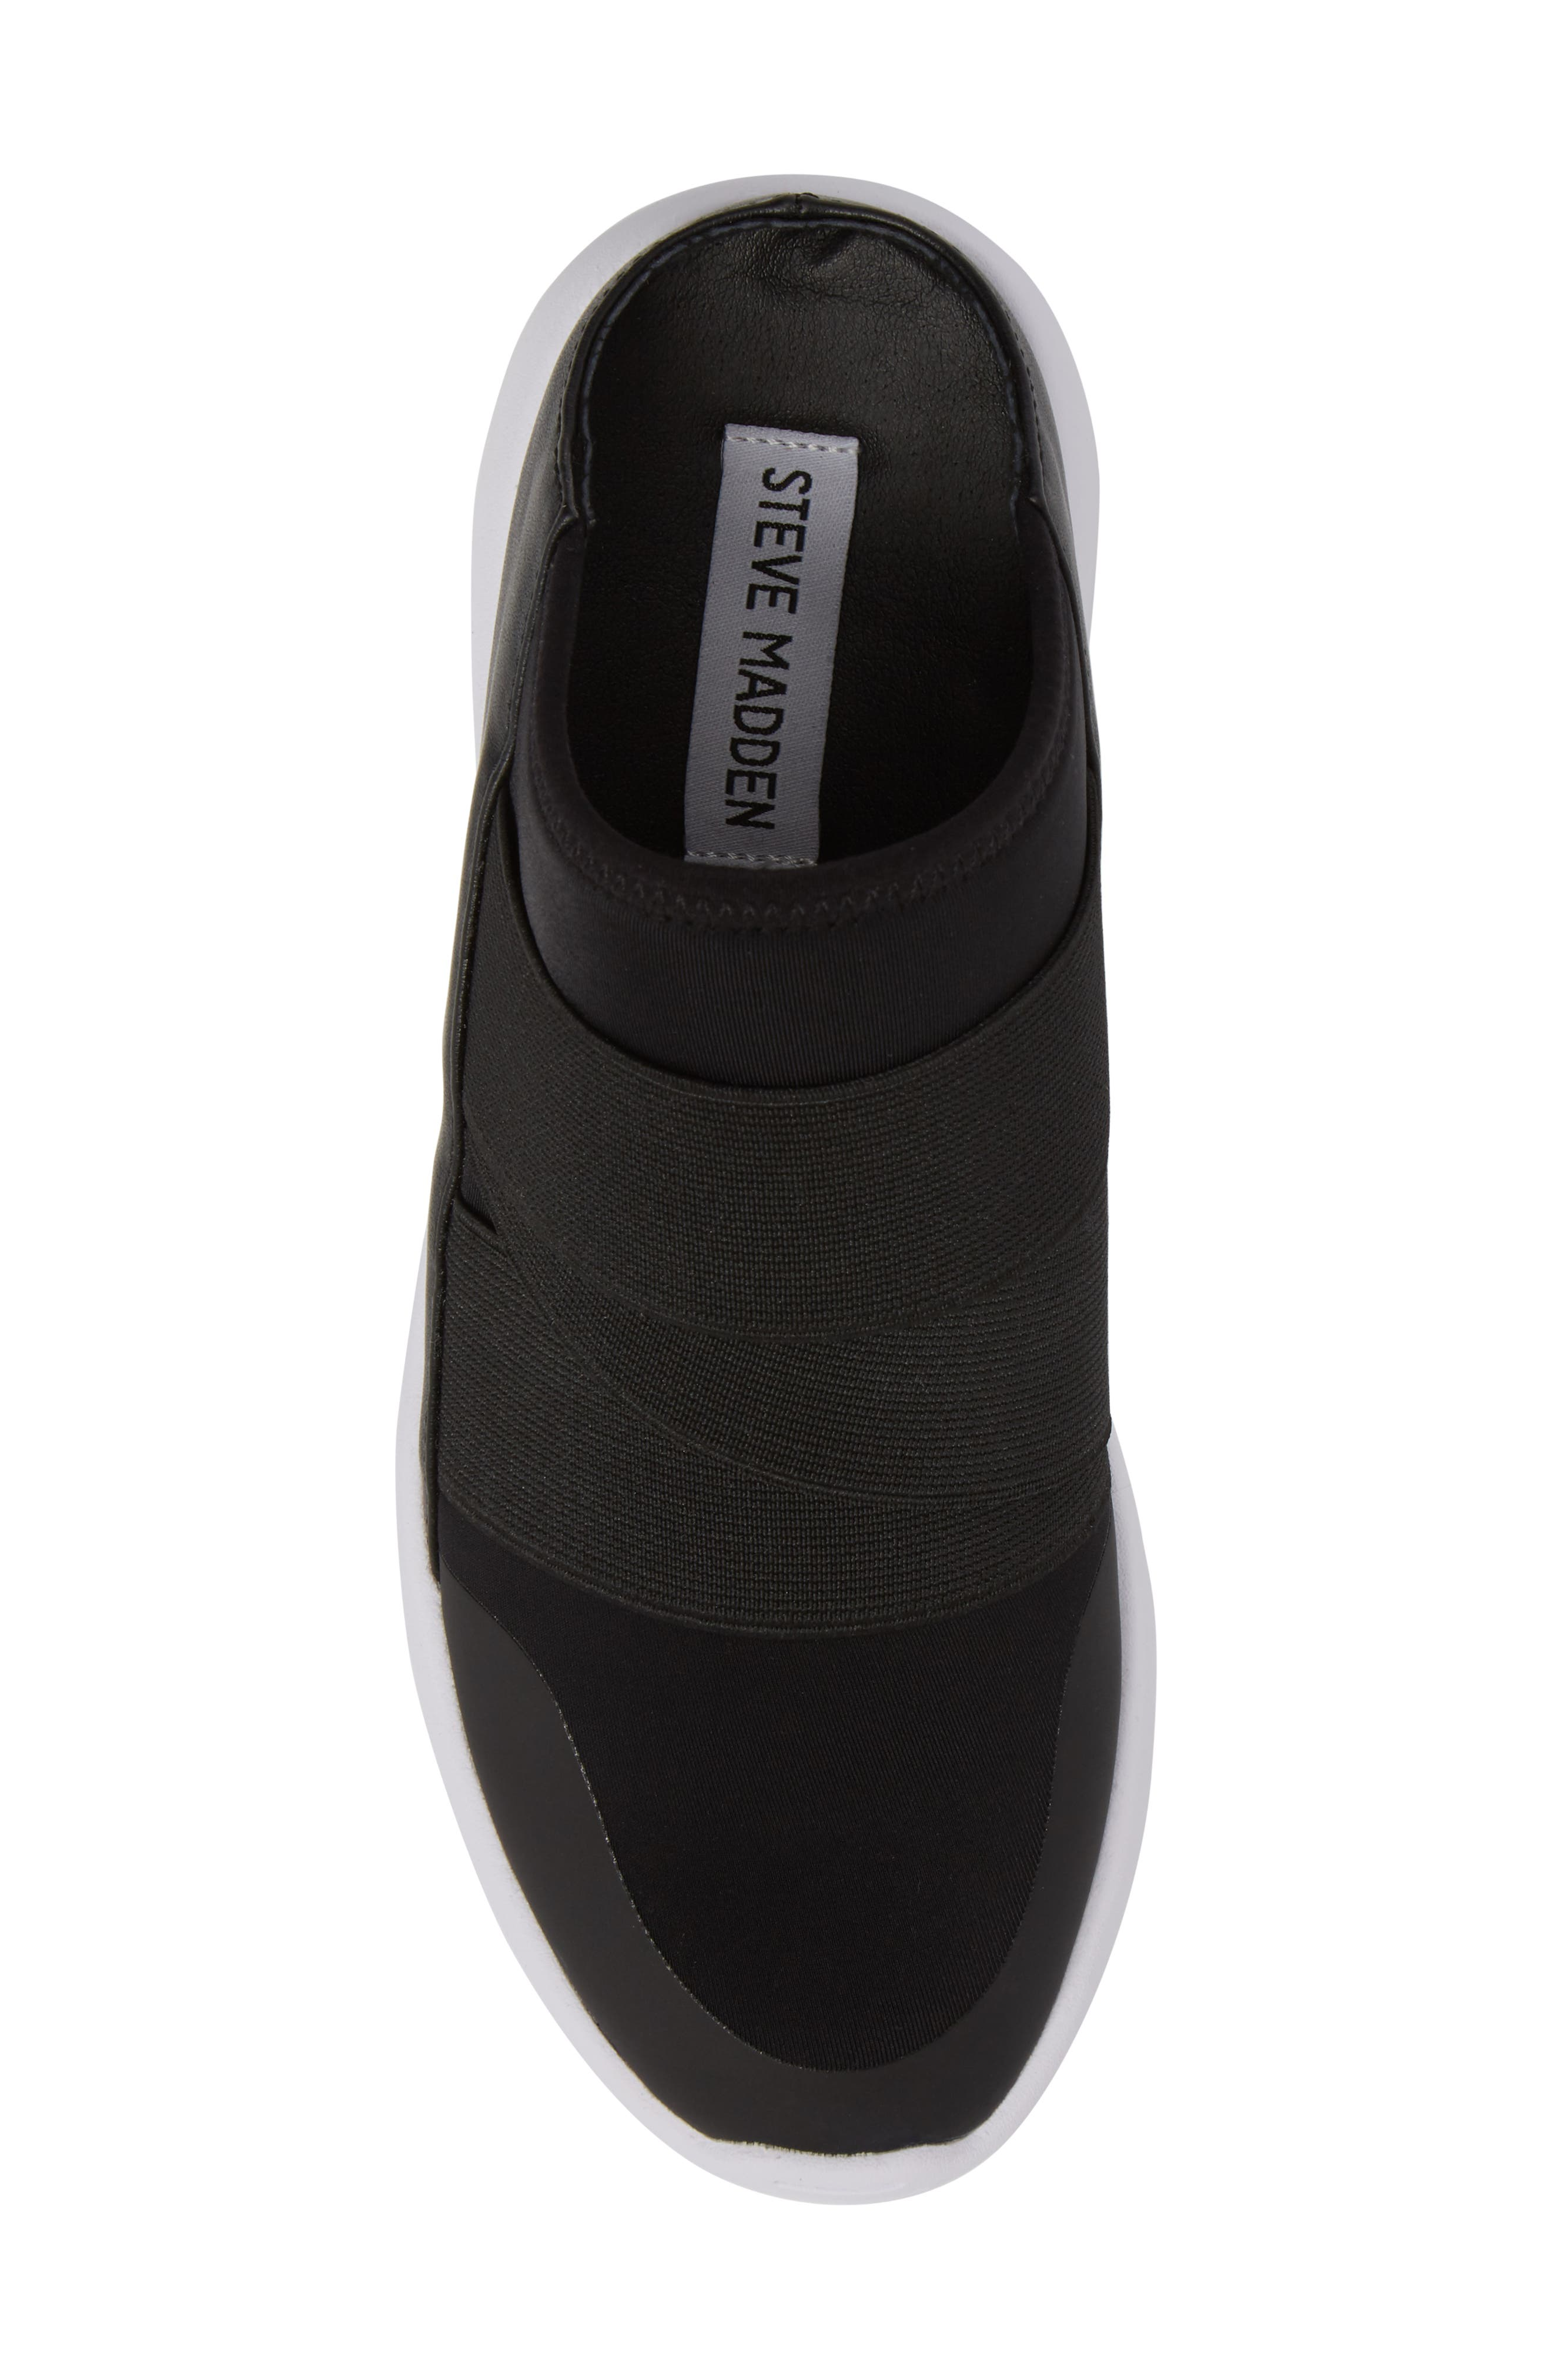 Vine Slip-On Sneaker,                             Alternate thumbnail 5, color,                             001